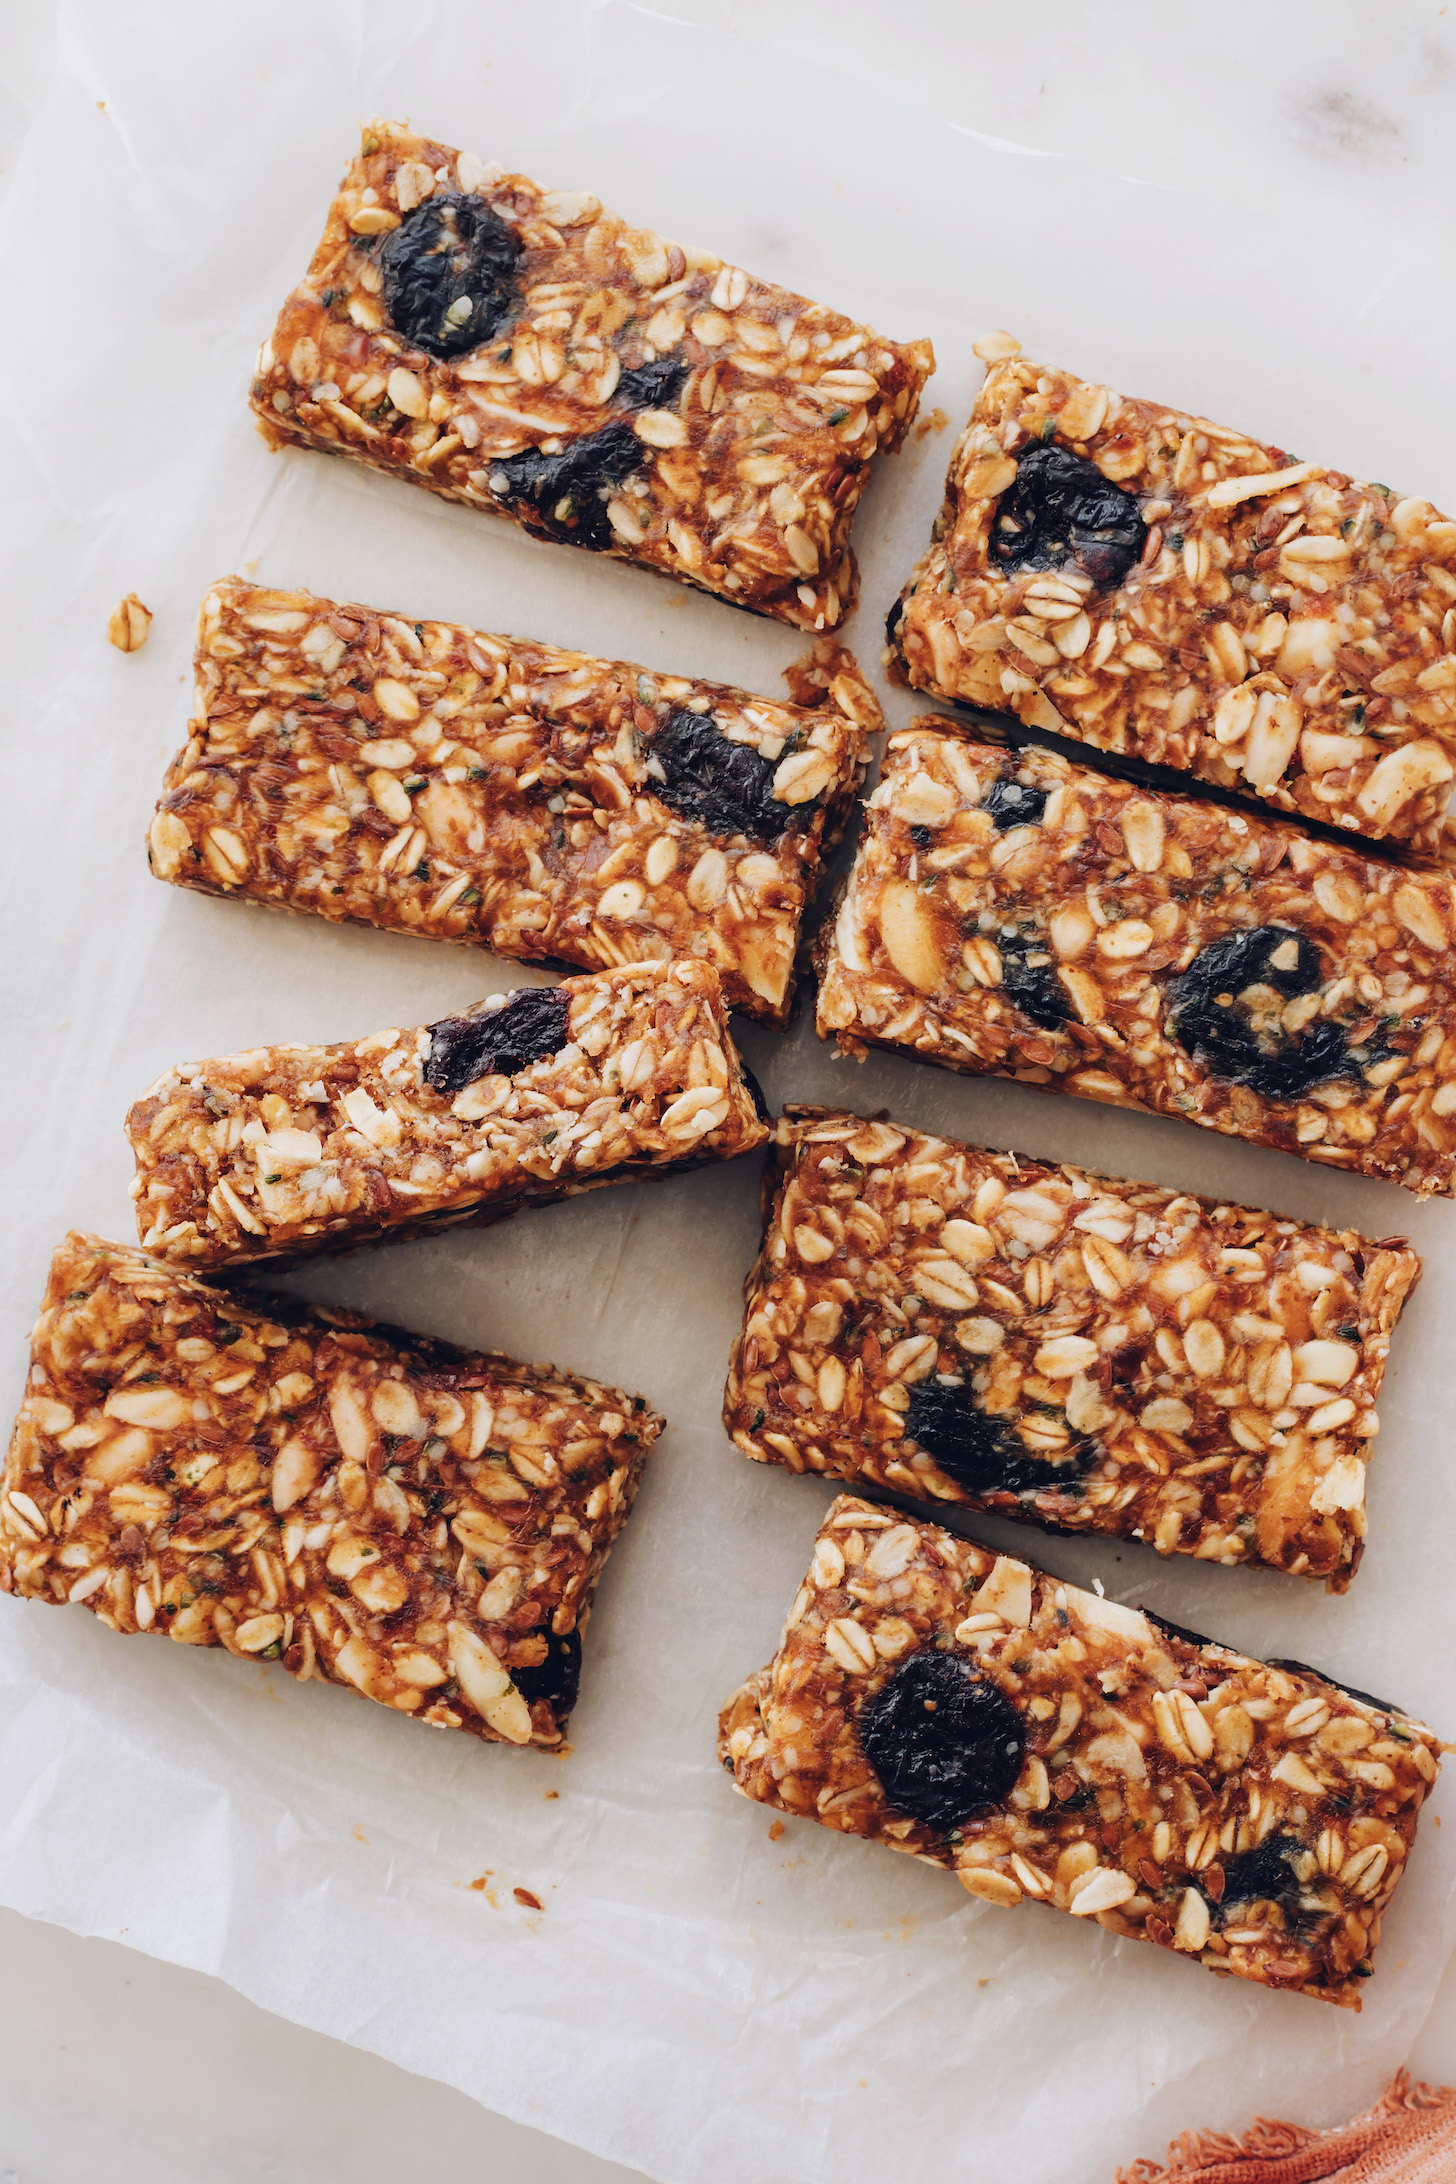 Sliced cherry almond granola bars on a piece of parchment paper